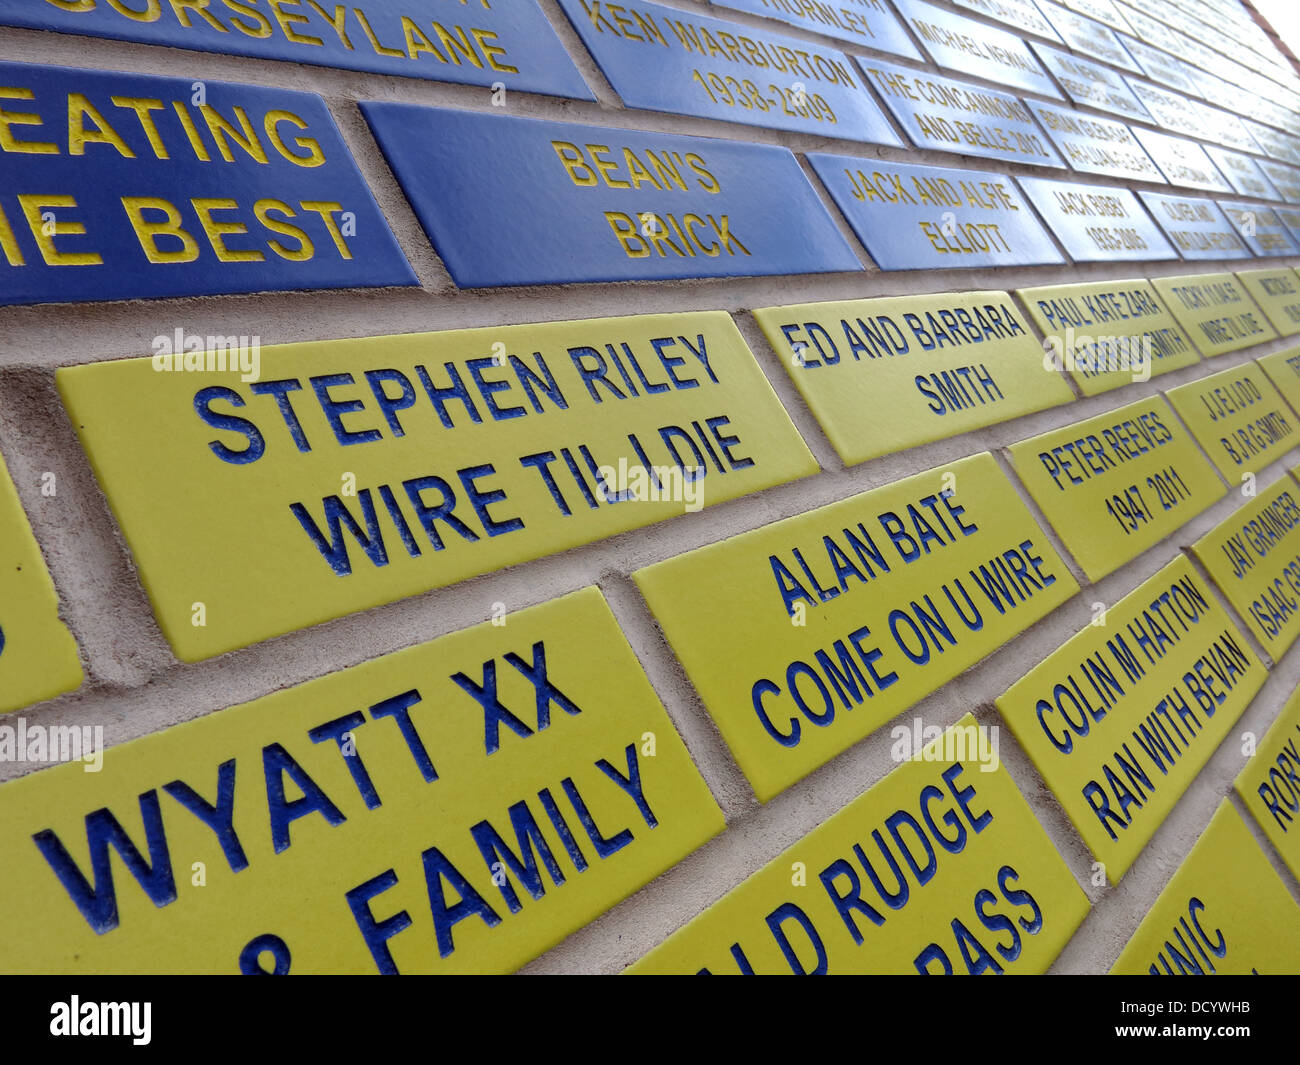 Warrington,Rugby,League,Wolve,Wolfs,history,sporting,heritage,historic,world,cup,2013,Samoa,New,Zealand,match,game,venue,for,RLFC,Wire,til,i,die,blue,yellow,strip,Wires,football,footballer,Eyrl,gotonysmith,Jones,Halliwell,Rugby,stadium,Winwick,Road,Warrington,WA2,7NE,United,Kingdom,WA27NE,Buy Pictures of,Buy Images Of